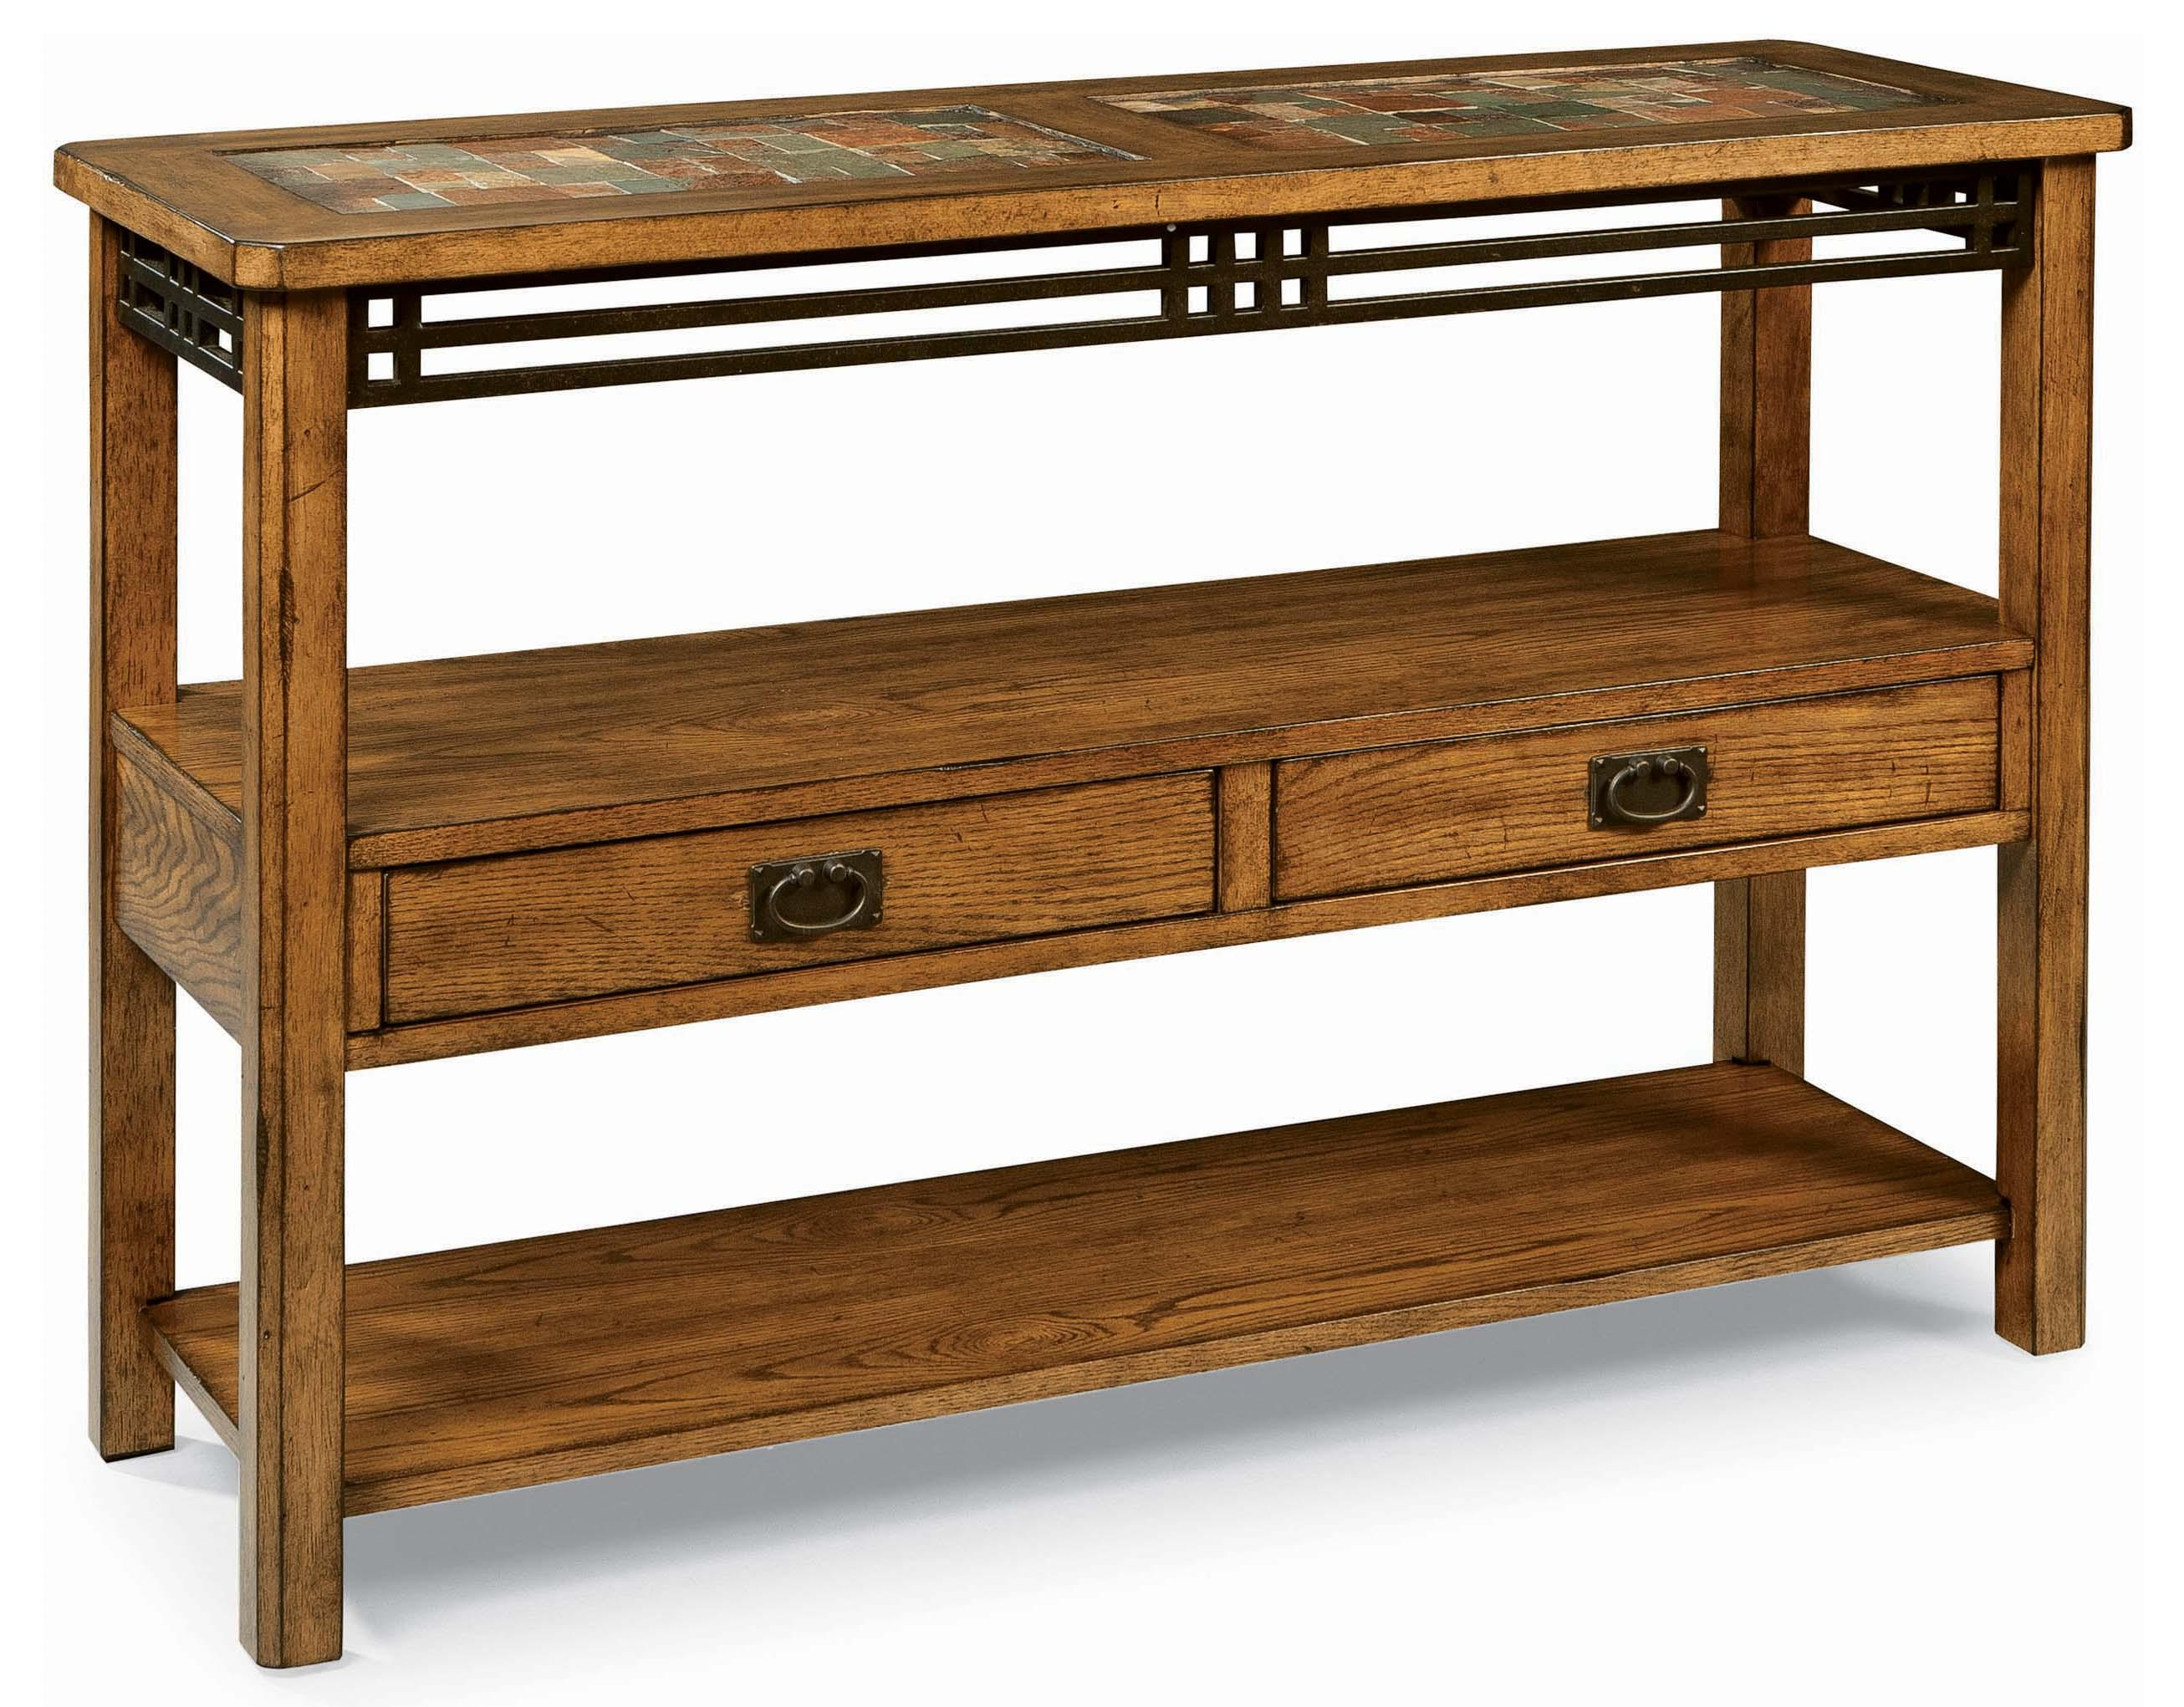 Peters Revington American Craftsman Sofa Table Item Number 220850